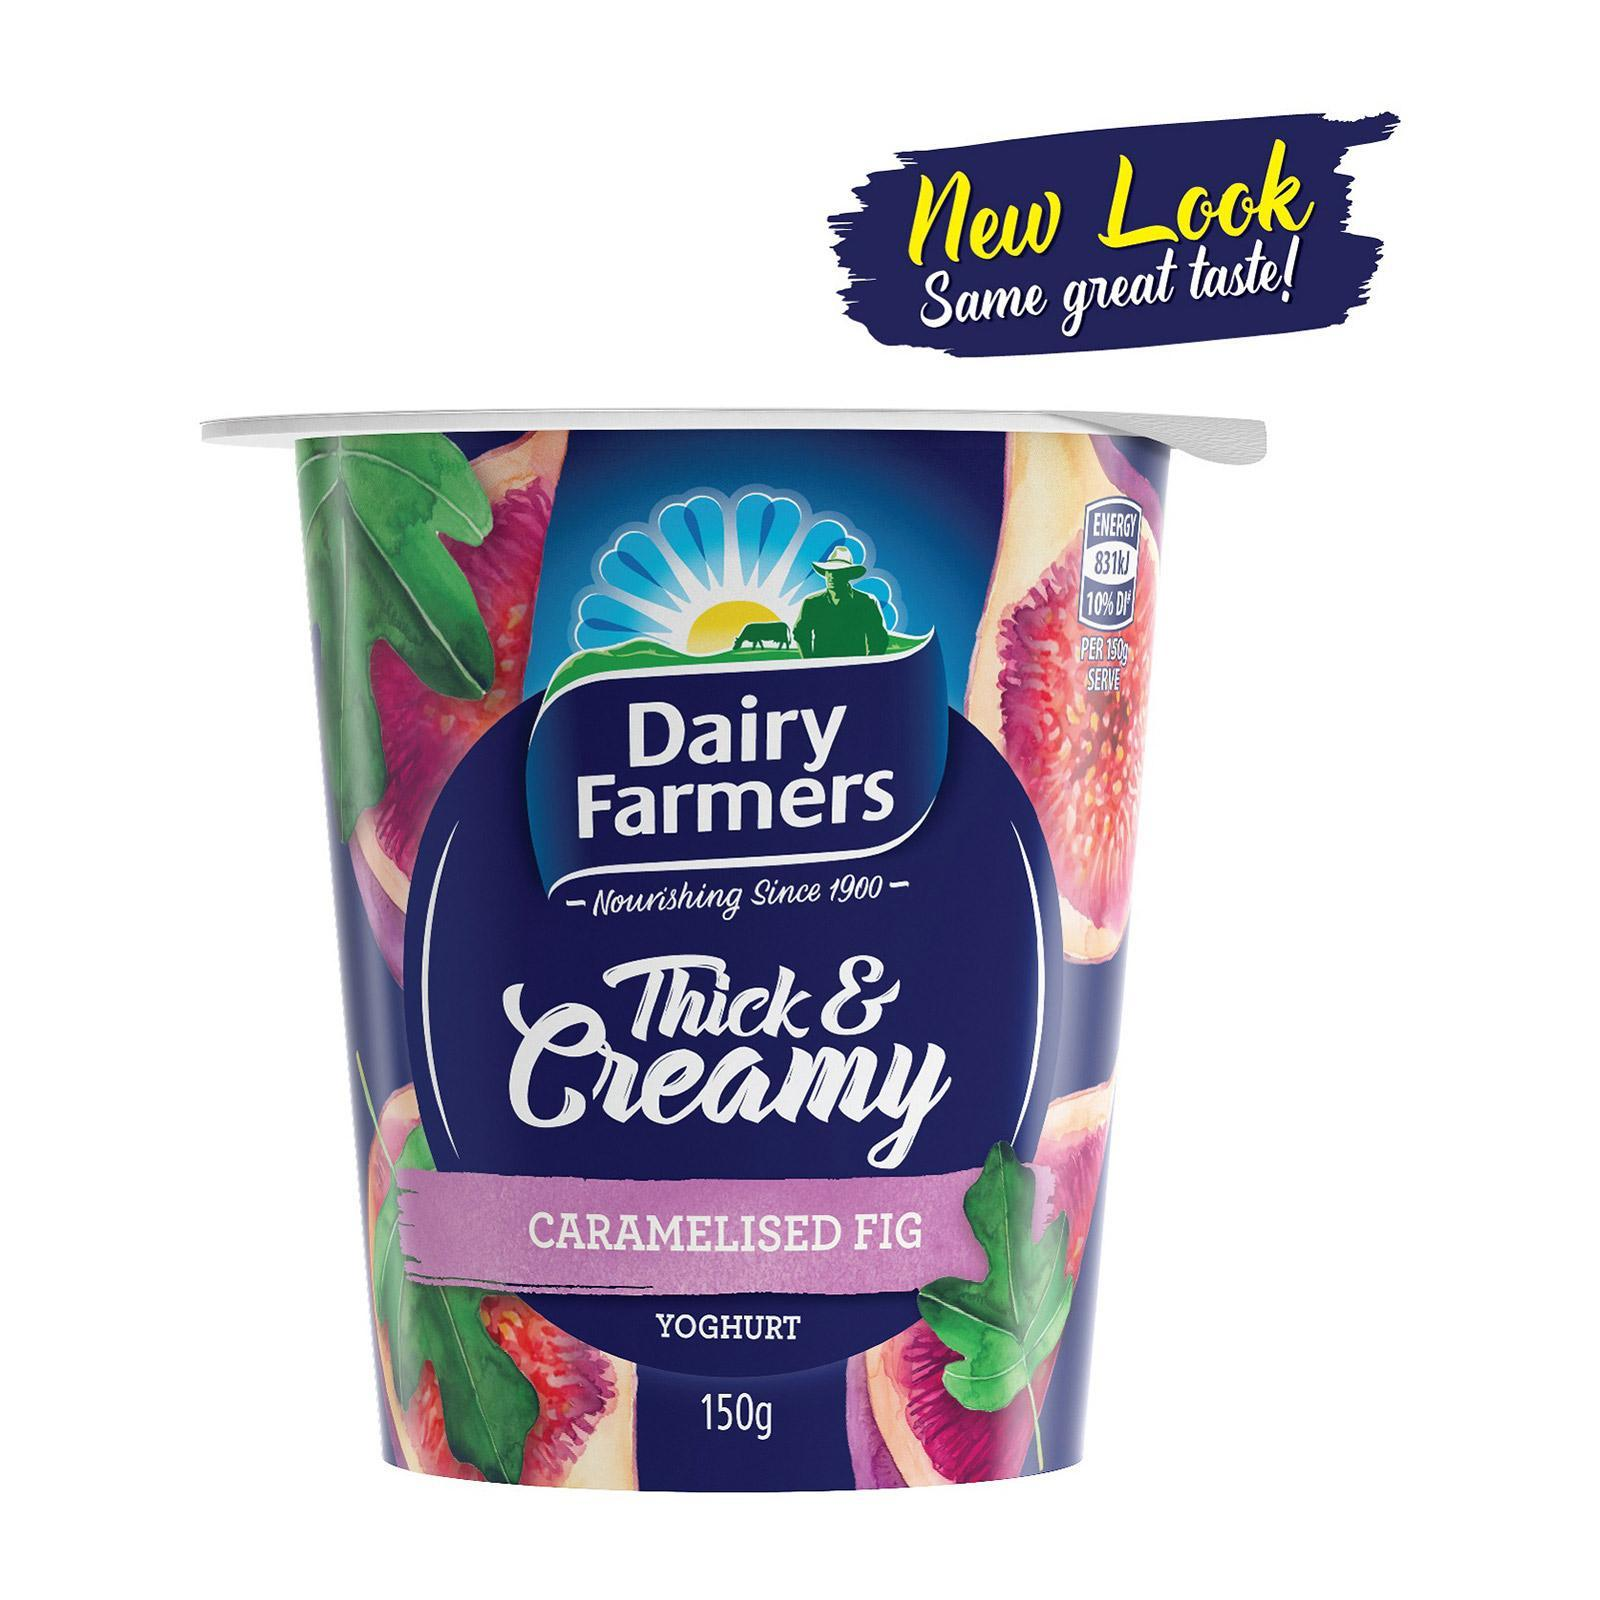 DAIRY FARMERS Yoghurt Thick & Creamy Caramelised Fig 150g